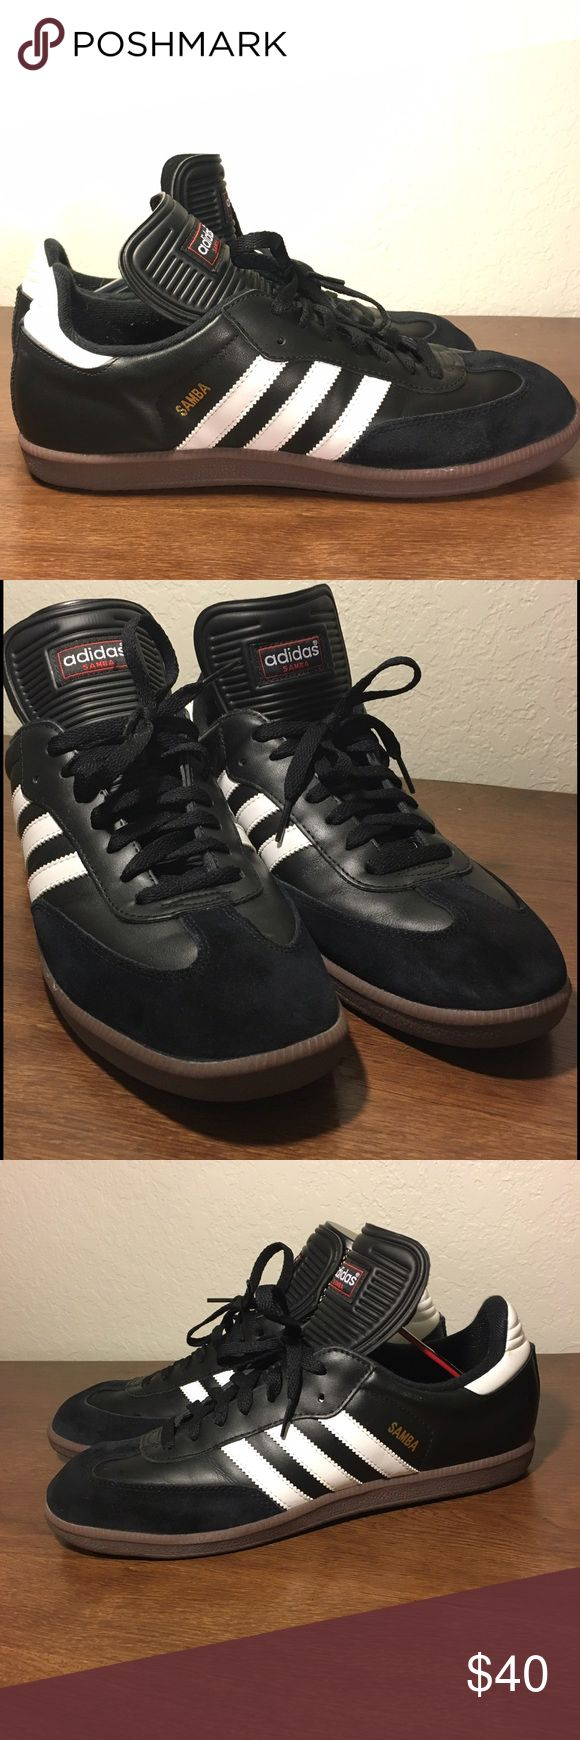 Adidas SAMBA sneaker Adidas SAMBA shoes.. in a very good condition. Worn once or twice. If you have any questions don't hesitate to ask.. ❤ Adidas Shoes Sneakers